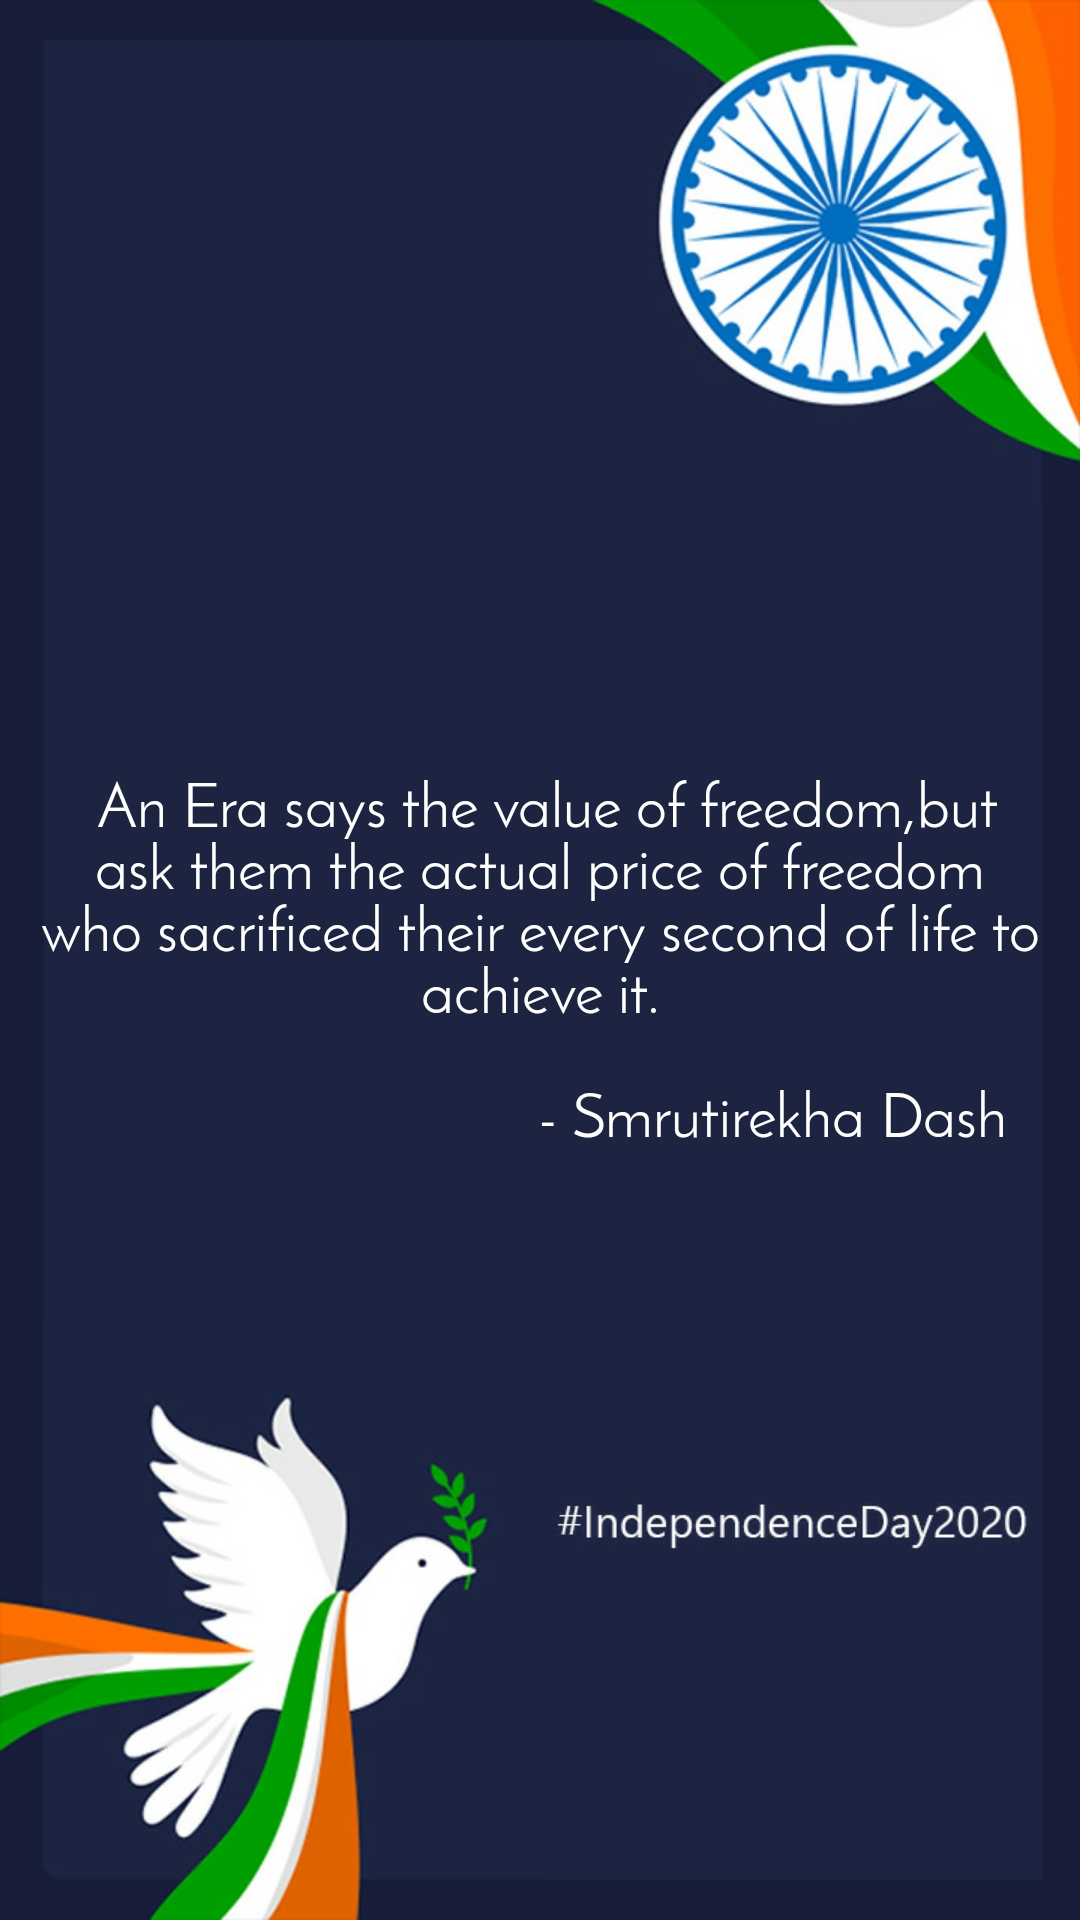 An Era says the value of freedom,but ask them the actual price of freedom who sacrificed their every second of life to achieve it.                                 - Smrutirekha Dash